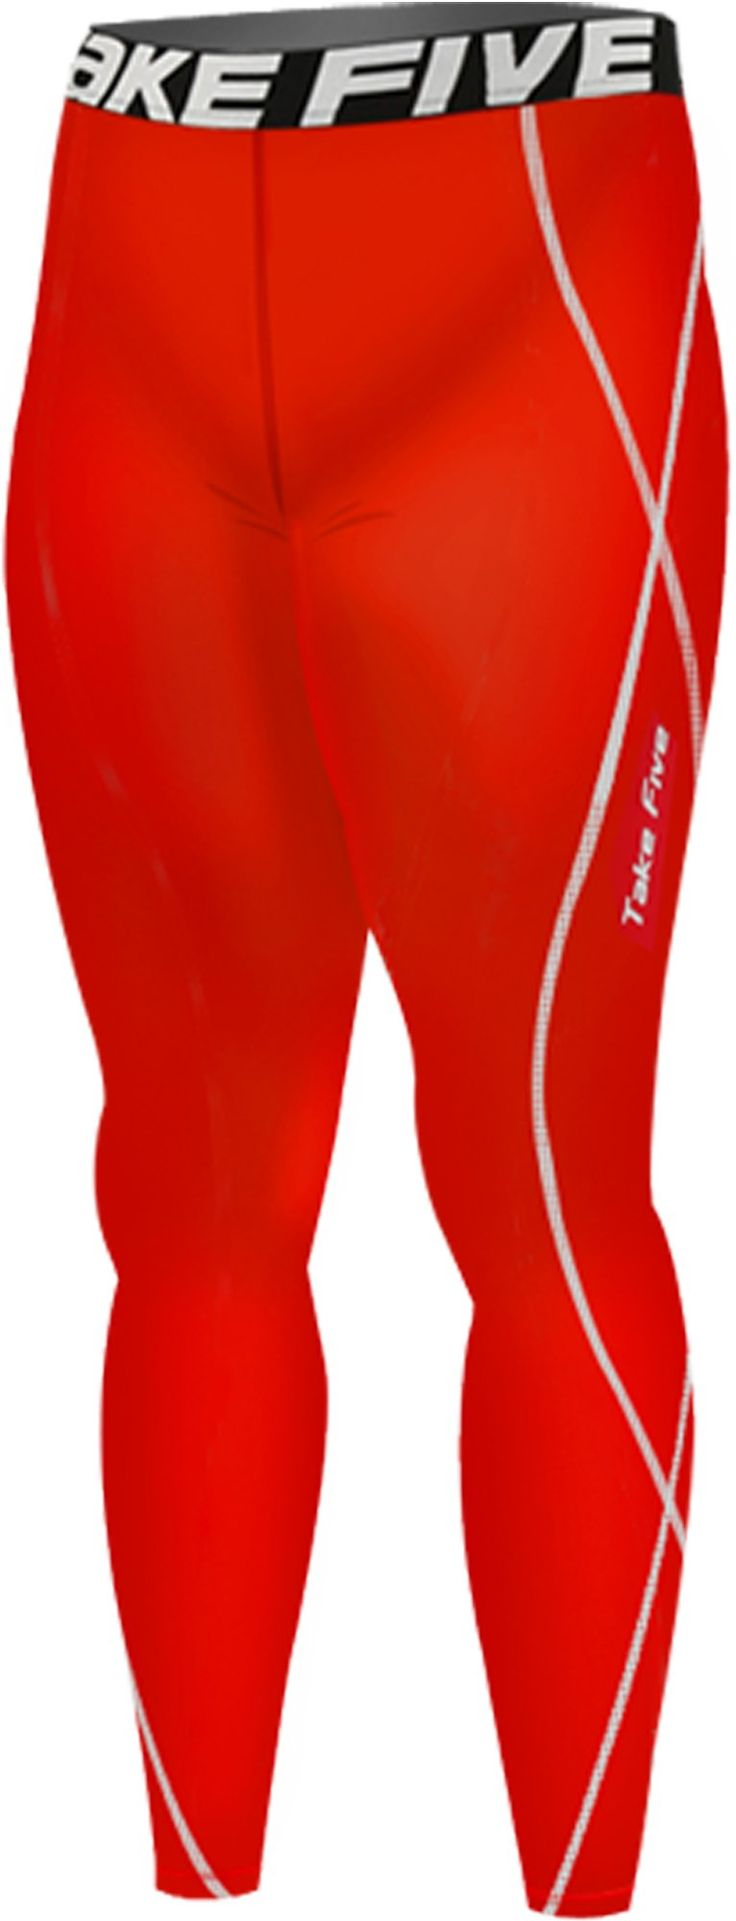 New 167 Red Skin Tights Leggings Sports Compression Base Layer Running Pants Mens (L). Shipping from Korea, South. Usually, Delivery time takes 10~20 business days. Men's long Pants compression Tights made using Take Five technology. UVA/UVB Protection - Take Five compressoin protects your skin from UVA/UVB radiation during your outdoor workout. Great for skiing, snowboarding, training, competing, and all weather sports and activities. Machine washable.